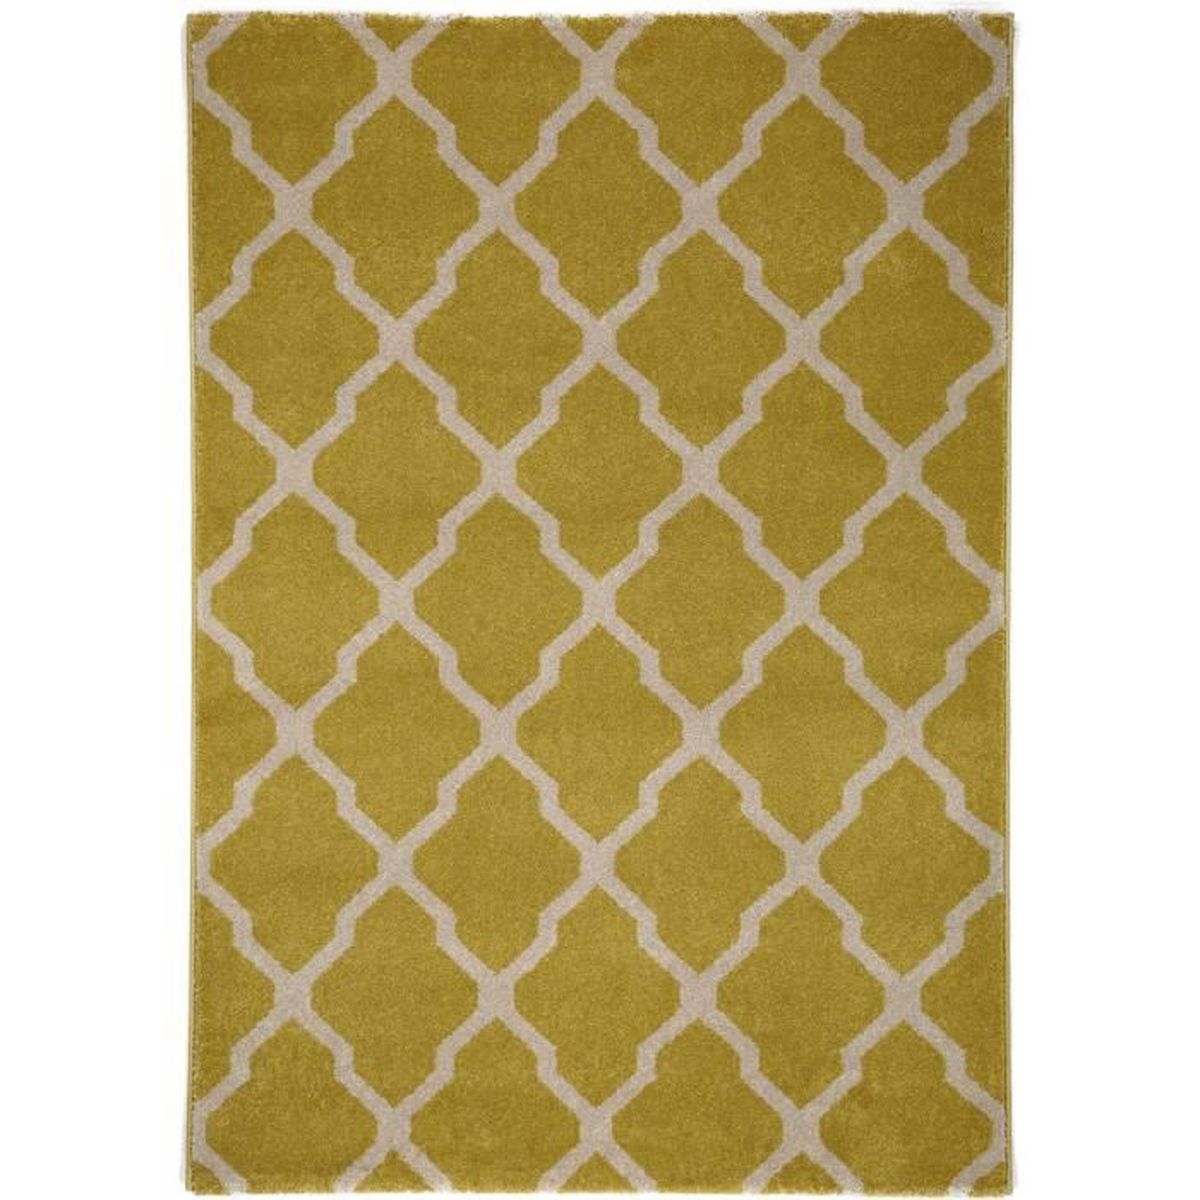 tapis poil ras lotus jaune 120x170 cm tapis poil court design moderne pour salon achat. Black Bedroom Furniture Sets. Home Design Ideas